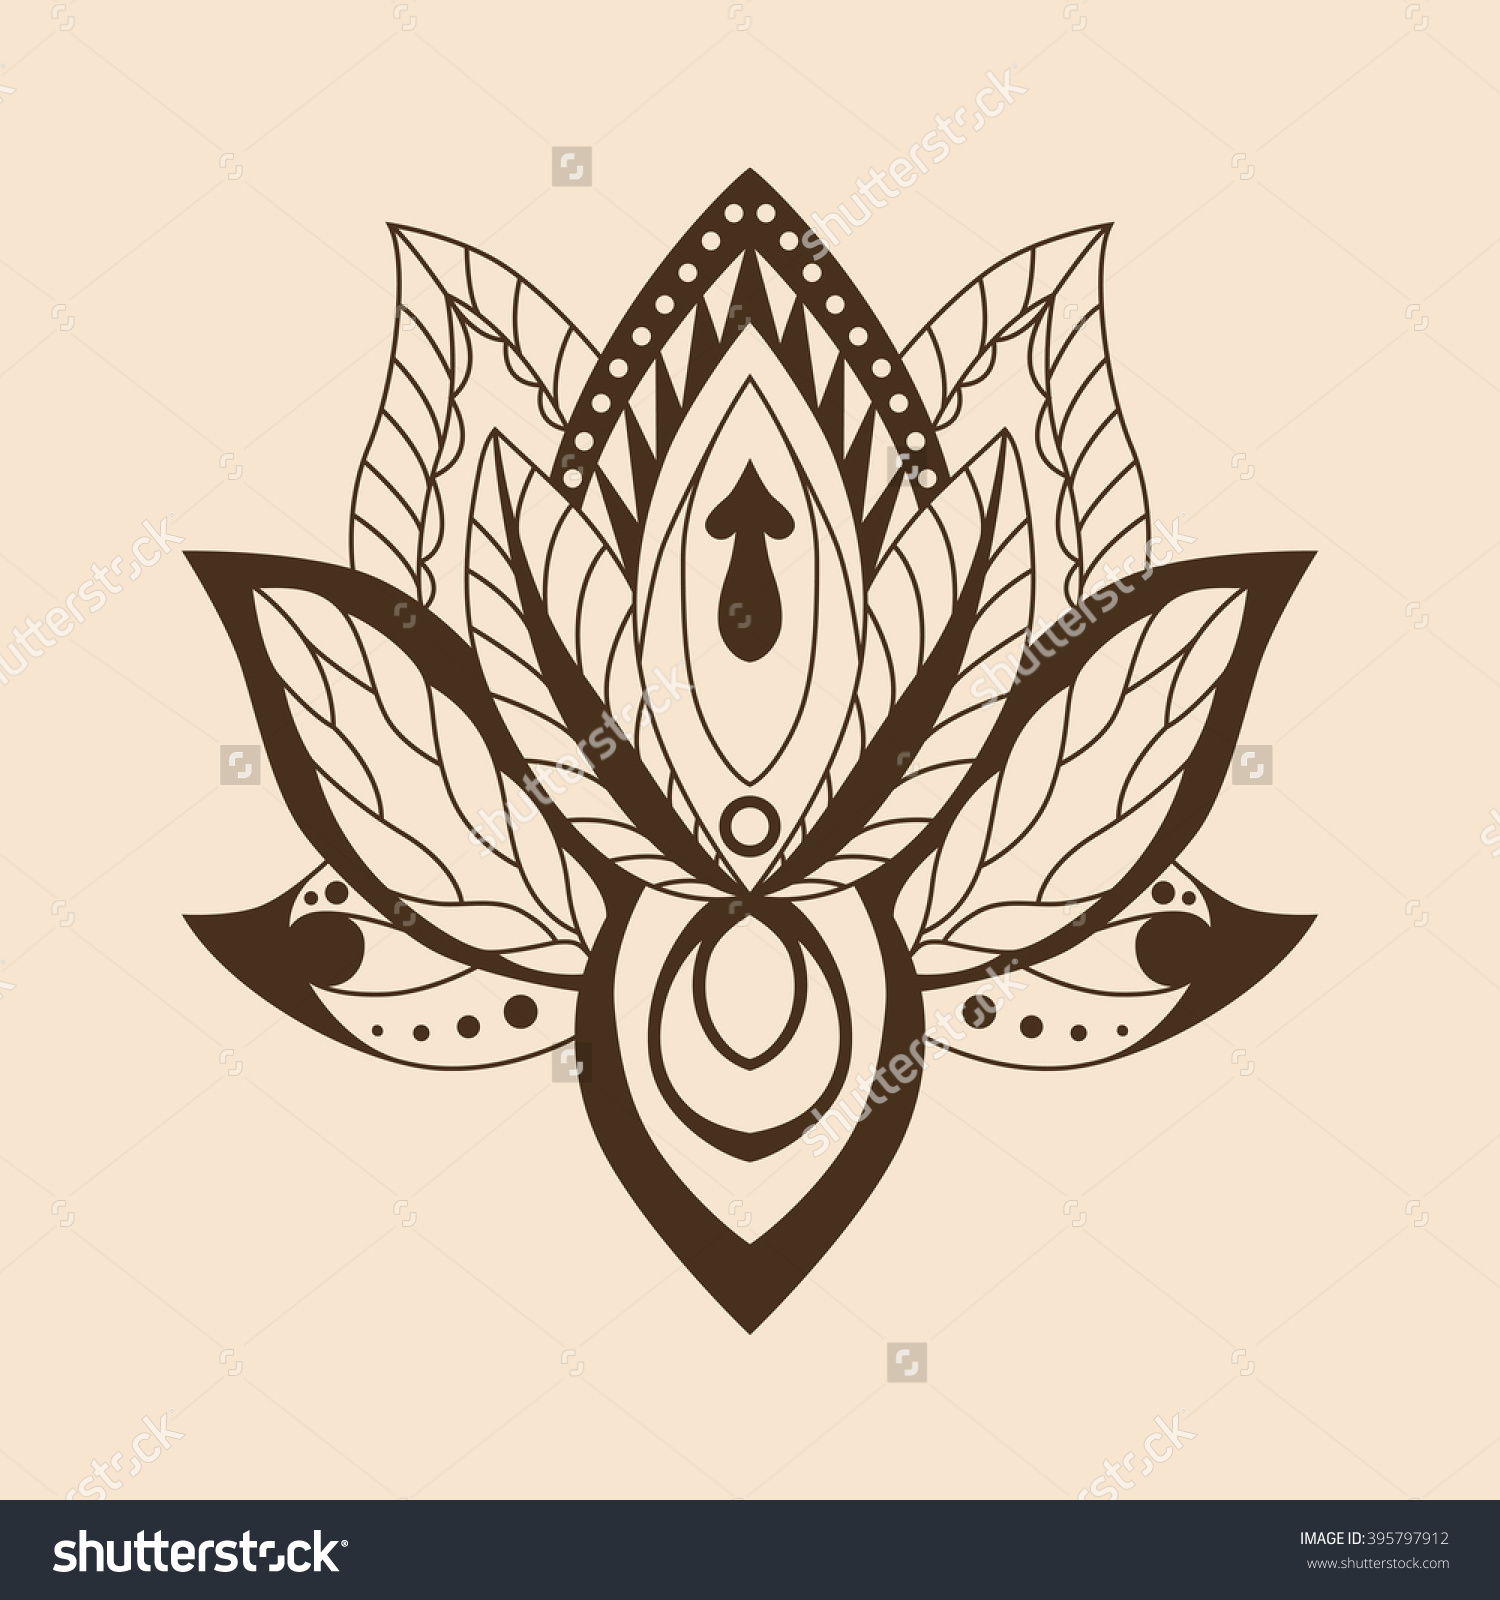 Lotus flower mandala clipart clipground lotus mandala vector ornamental lotus ethnic stock vector izmirmasajfo Image collections